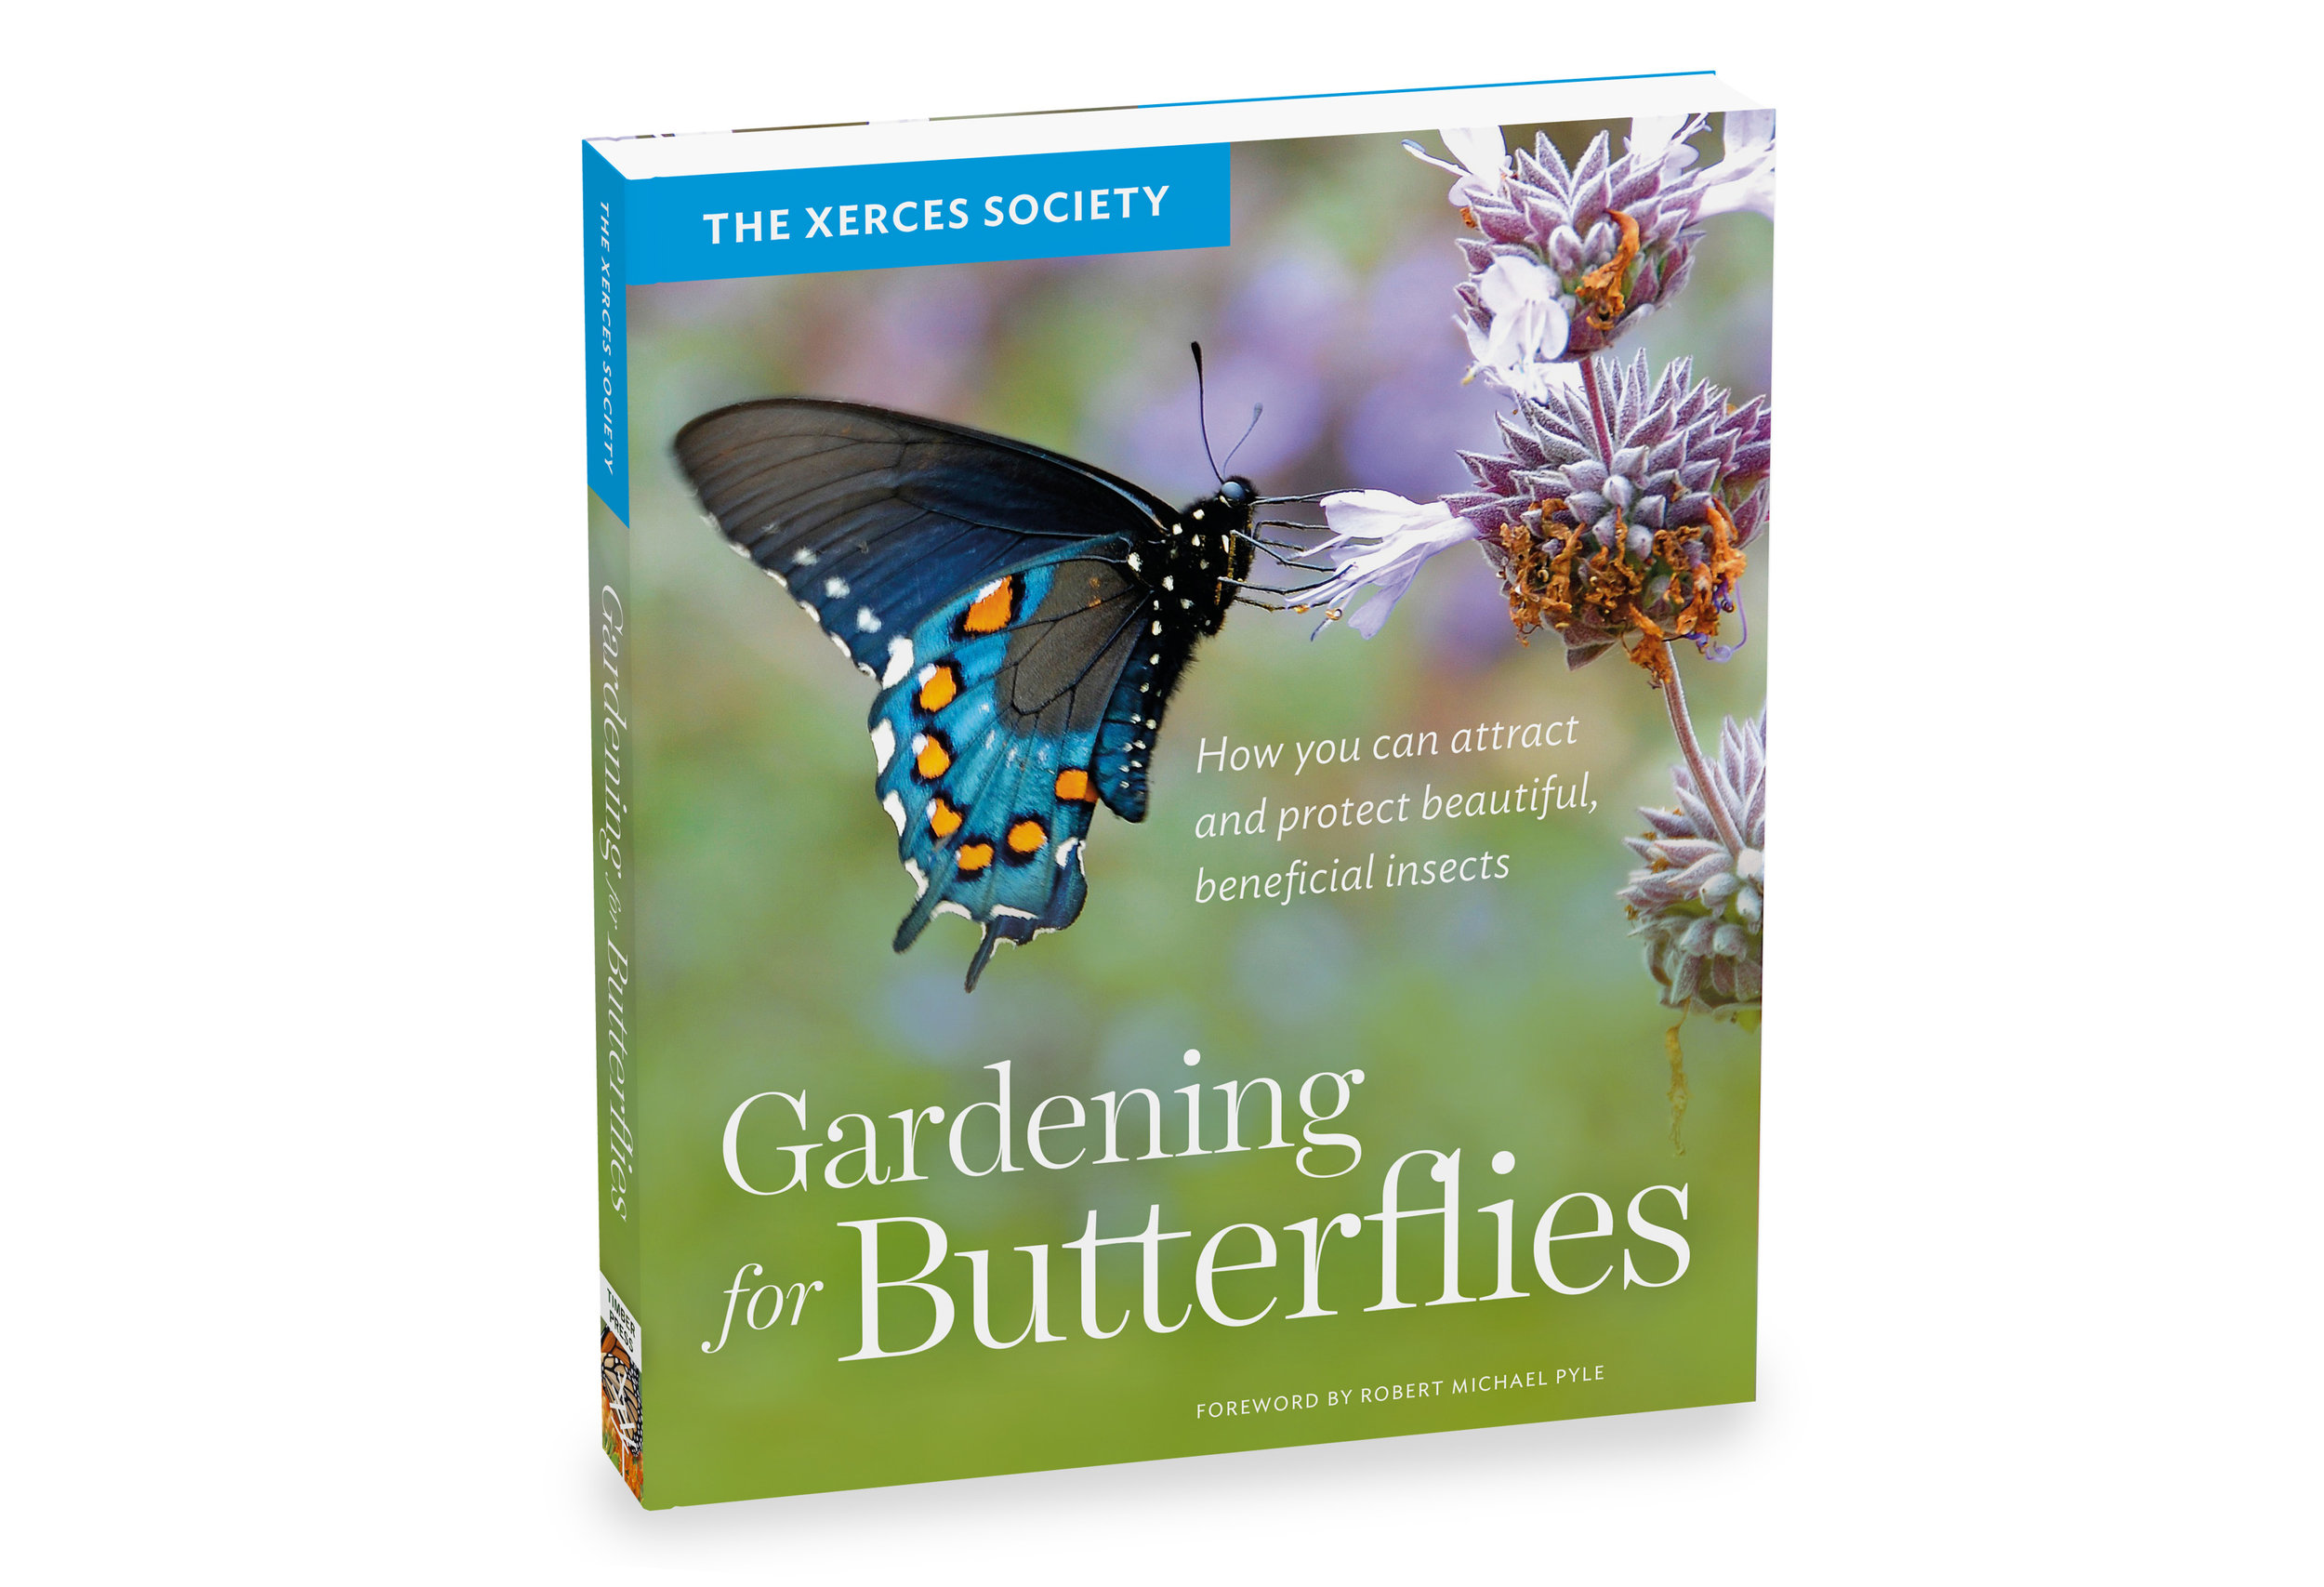 book_butterflygardening_cover_002.jpg